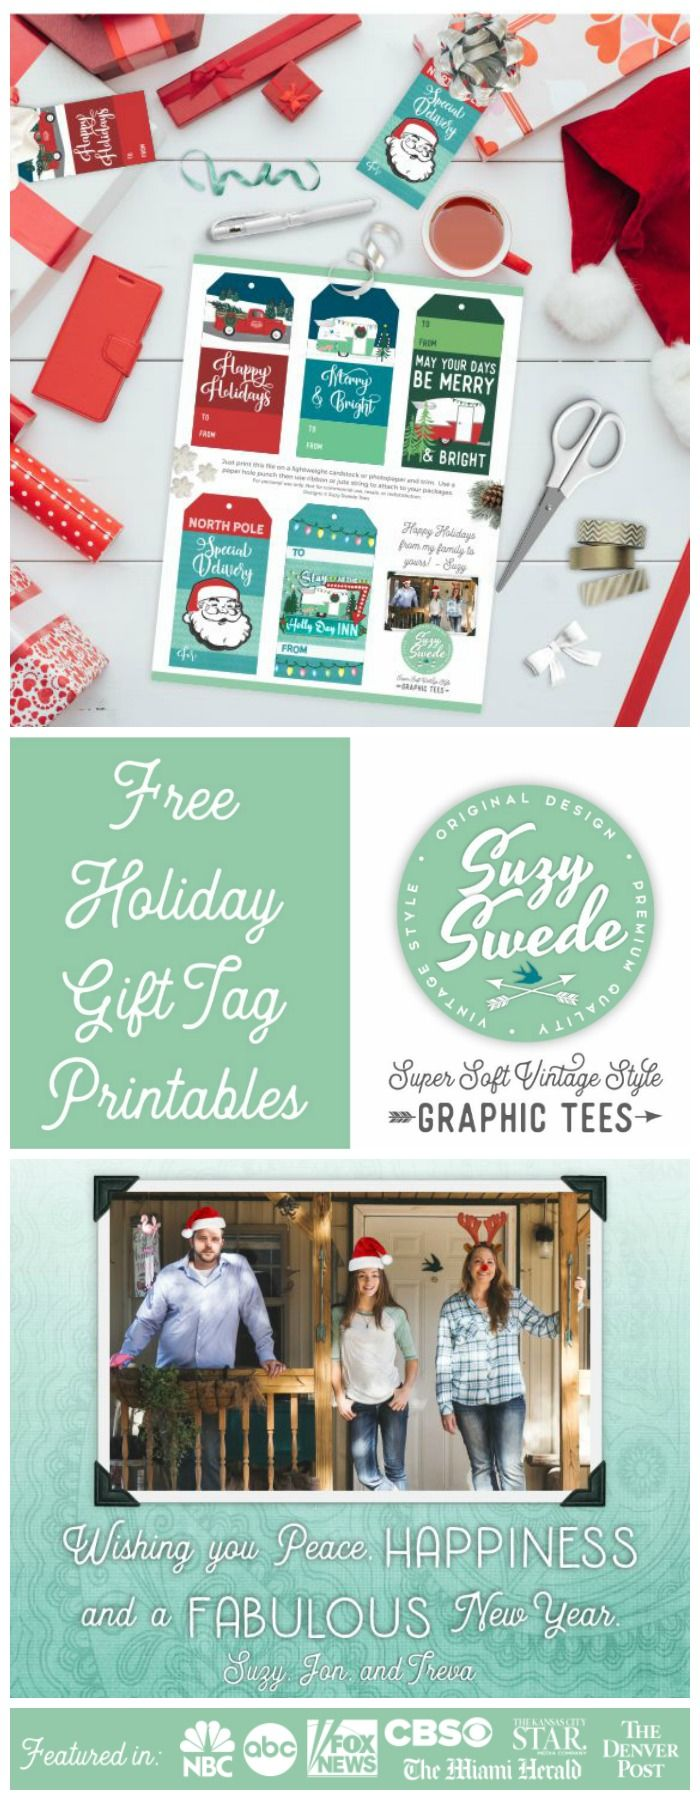 Free Holiday Gift Tag Printables Compliments of Suzy Swede ~ Vintage ...